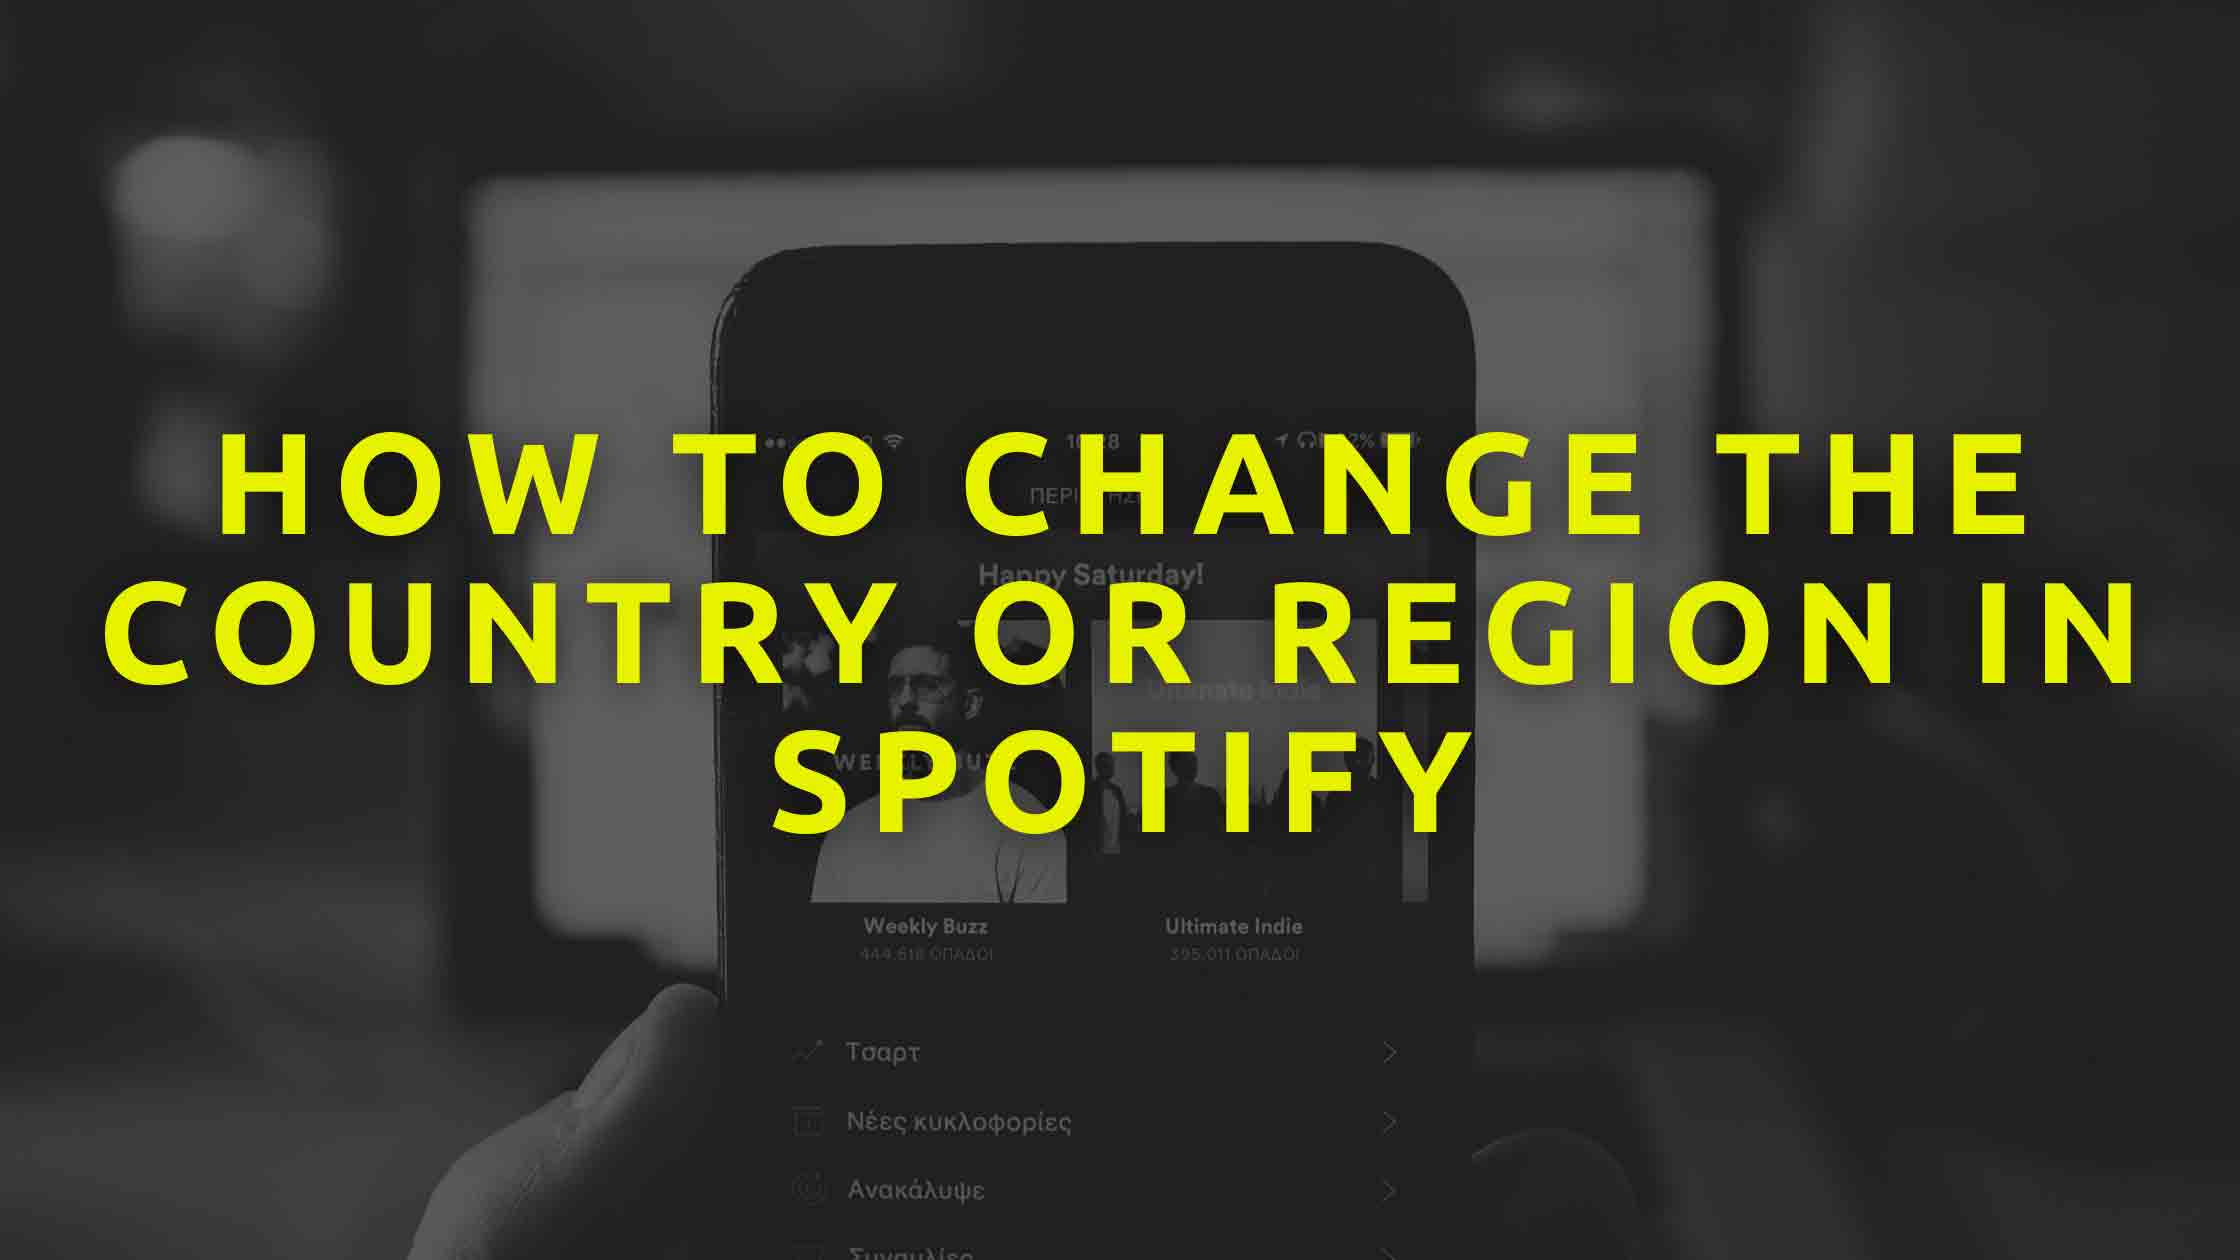 How-To-Change-The-Country-Or-Region-In-Spotify